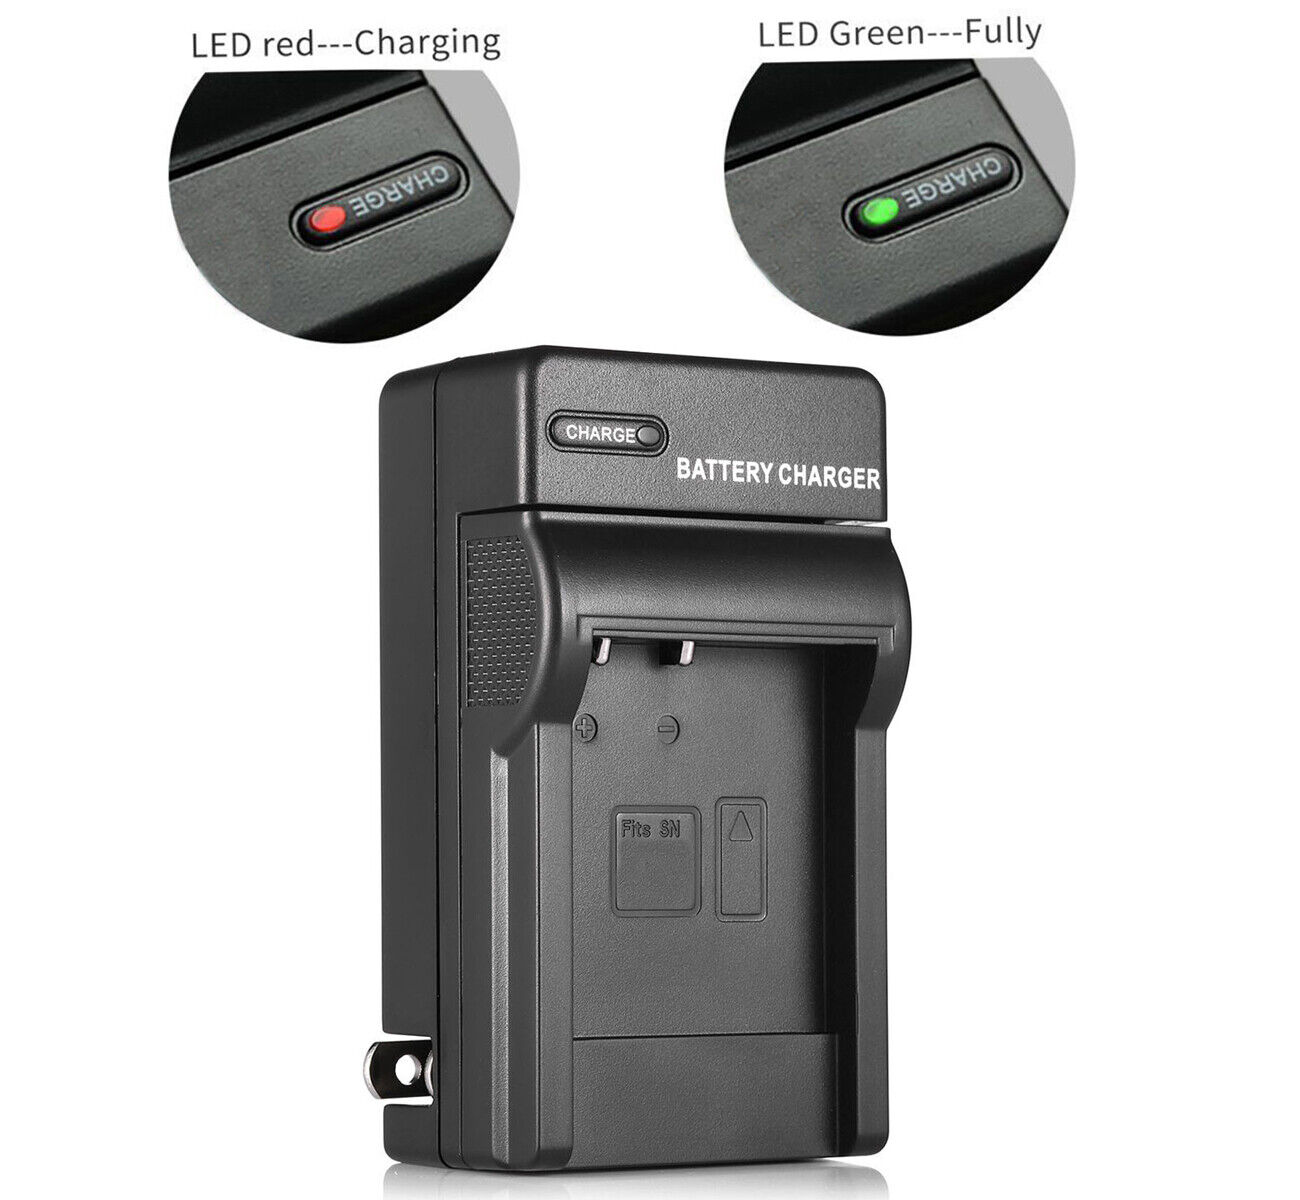 GZ-MS90U Battery Charger for JVC Everio GZ-MS90 GZ-MS101 Camcorder